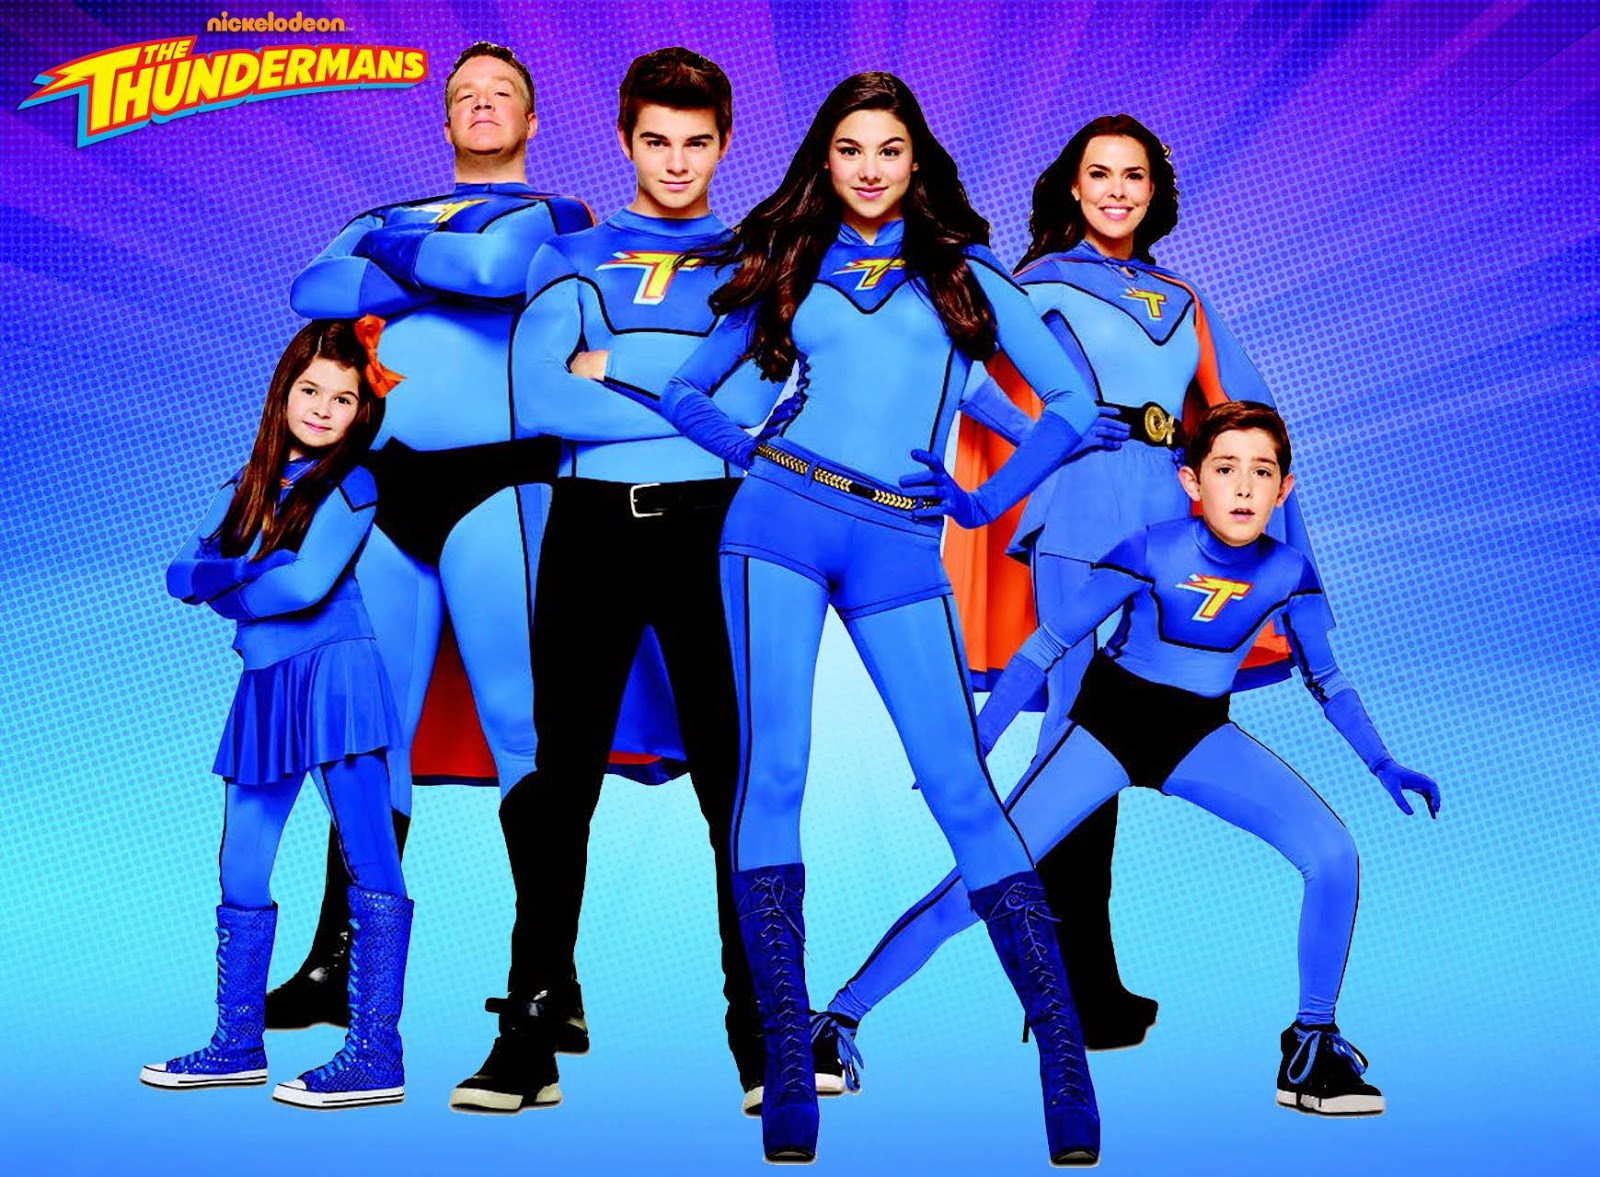 Les Thunderman The Thundermans En Streaming